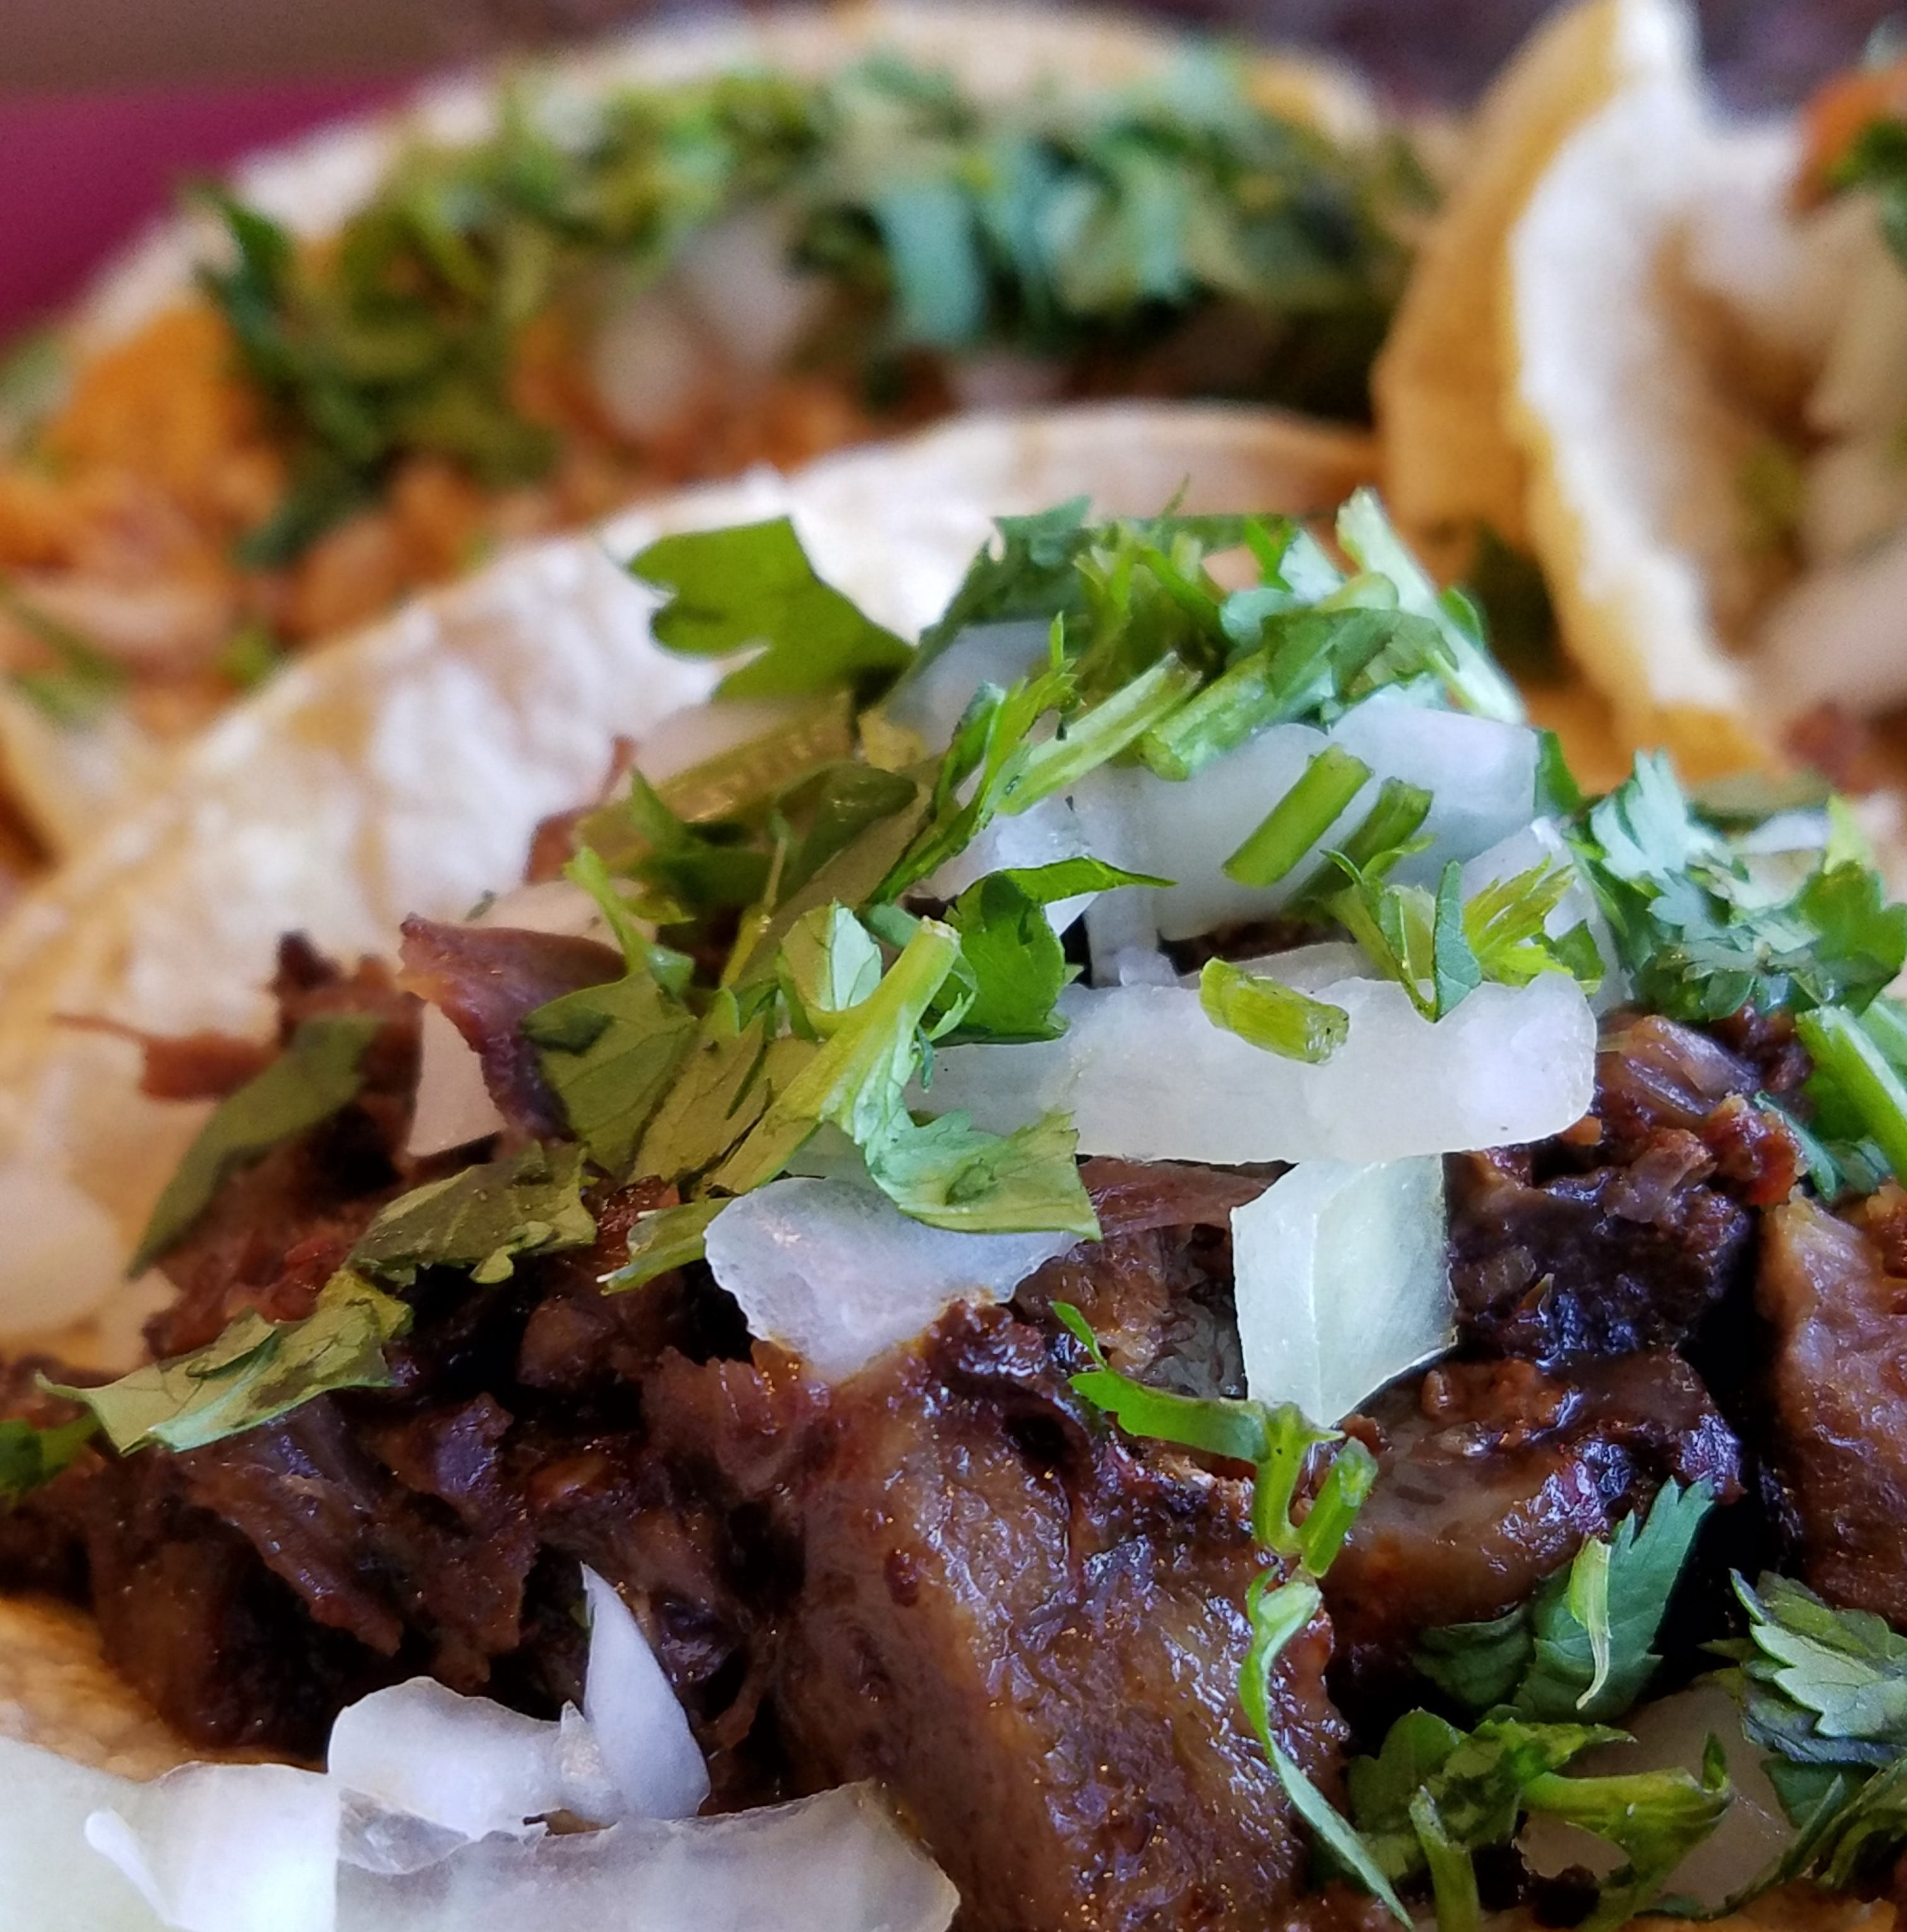 Evansville Taco Festival at Old National Events Plaza Saturday